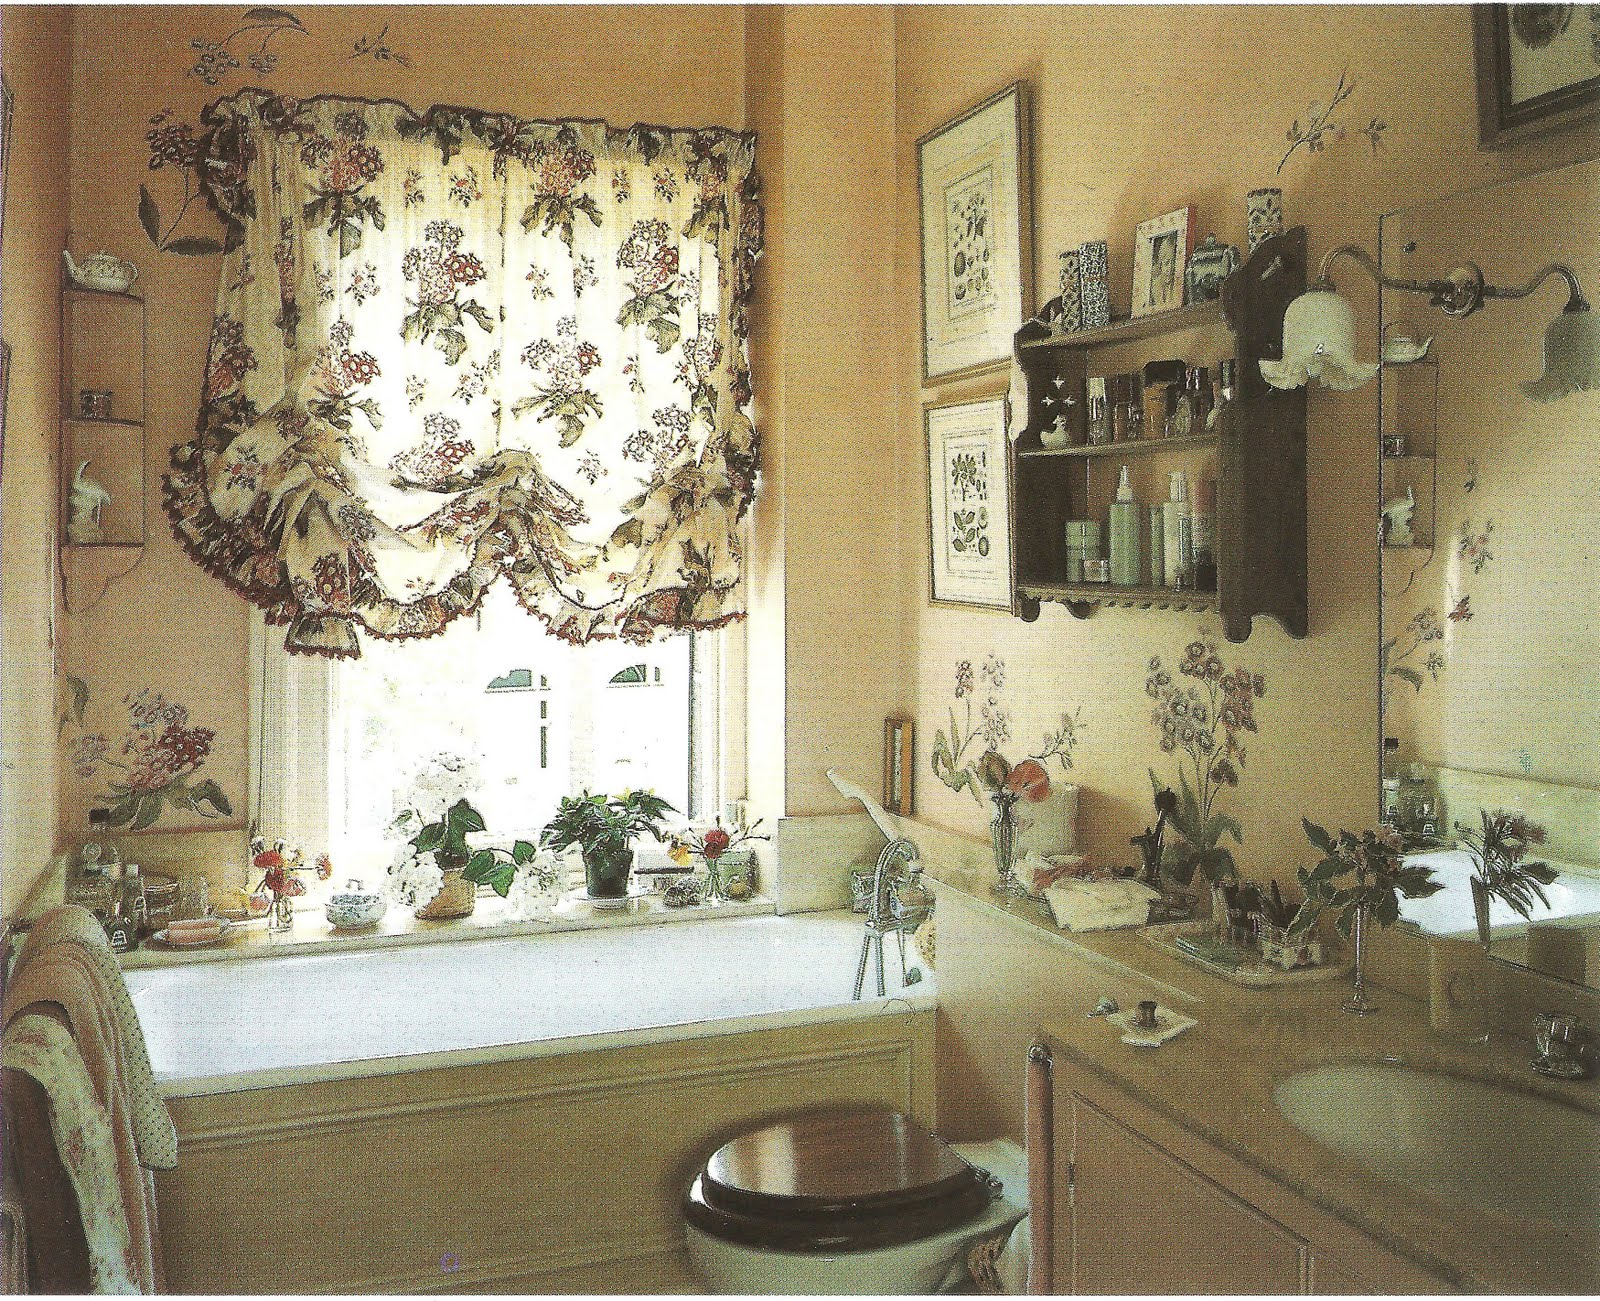 Pittura Verde Shabby Ancora Bagni Country Ideacountry